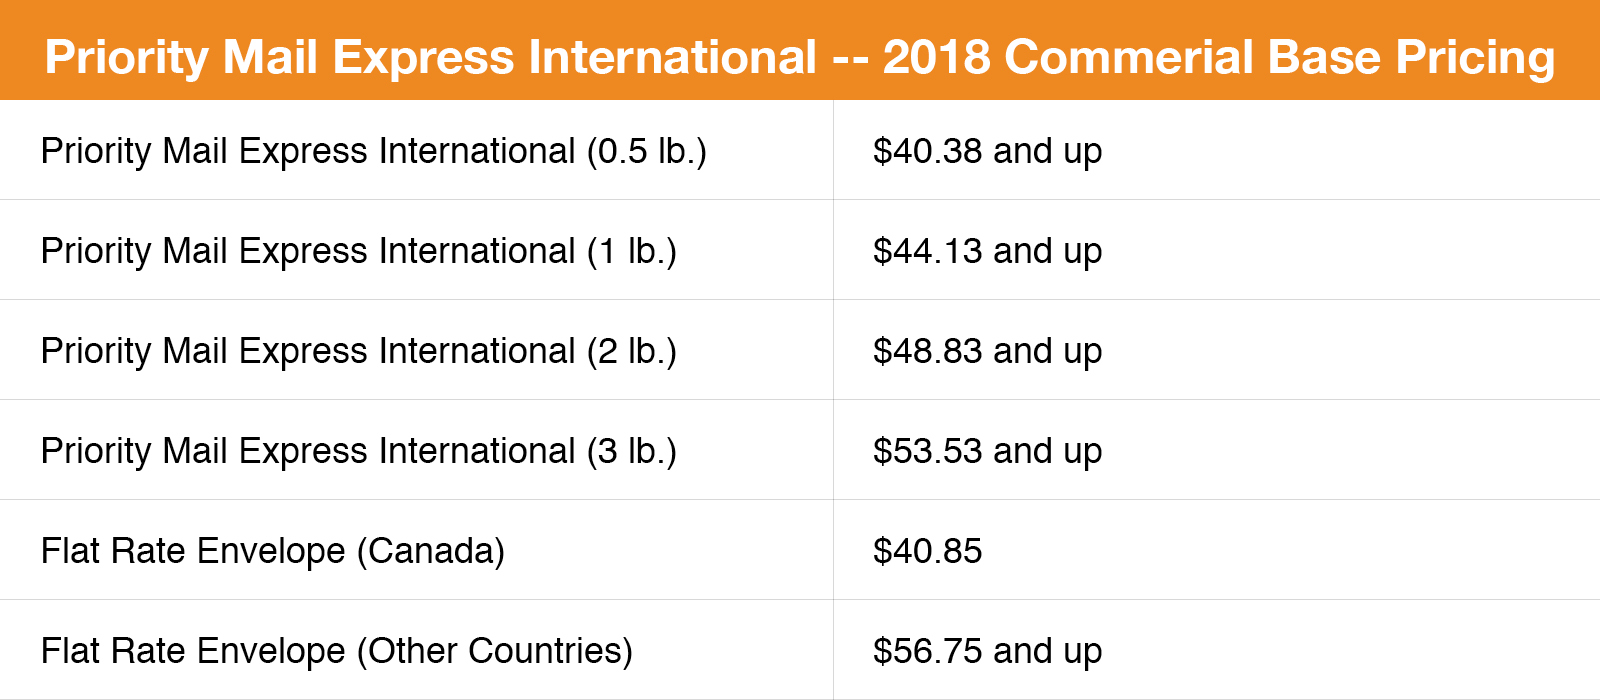 Priority Mail Express International 2018 Rates Commercial Base Pricing